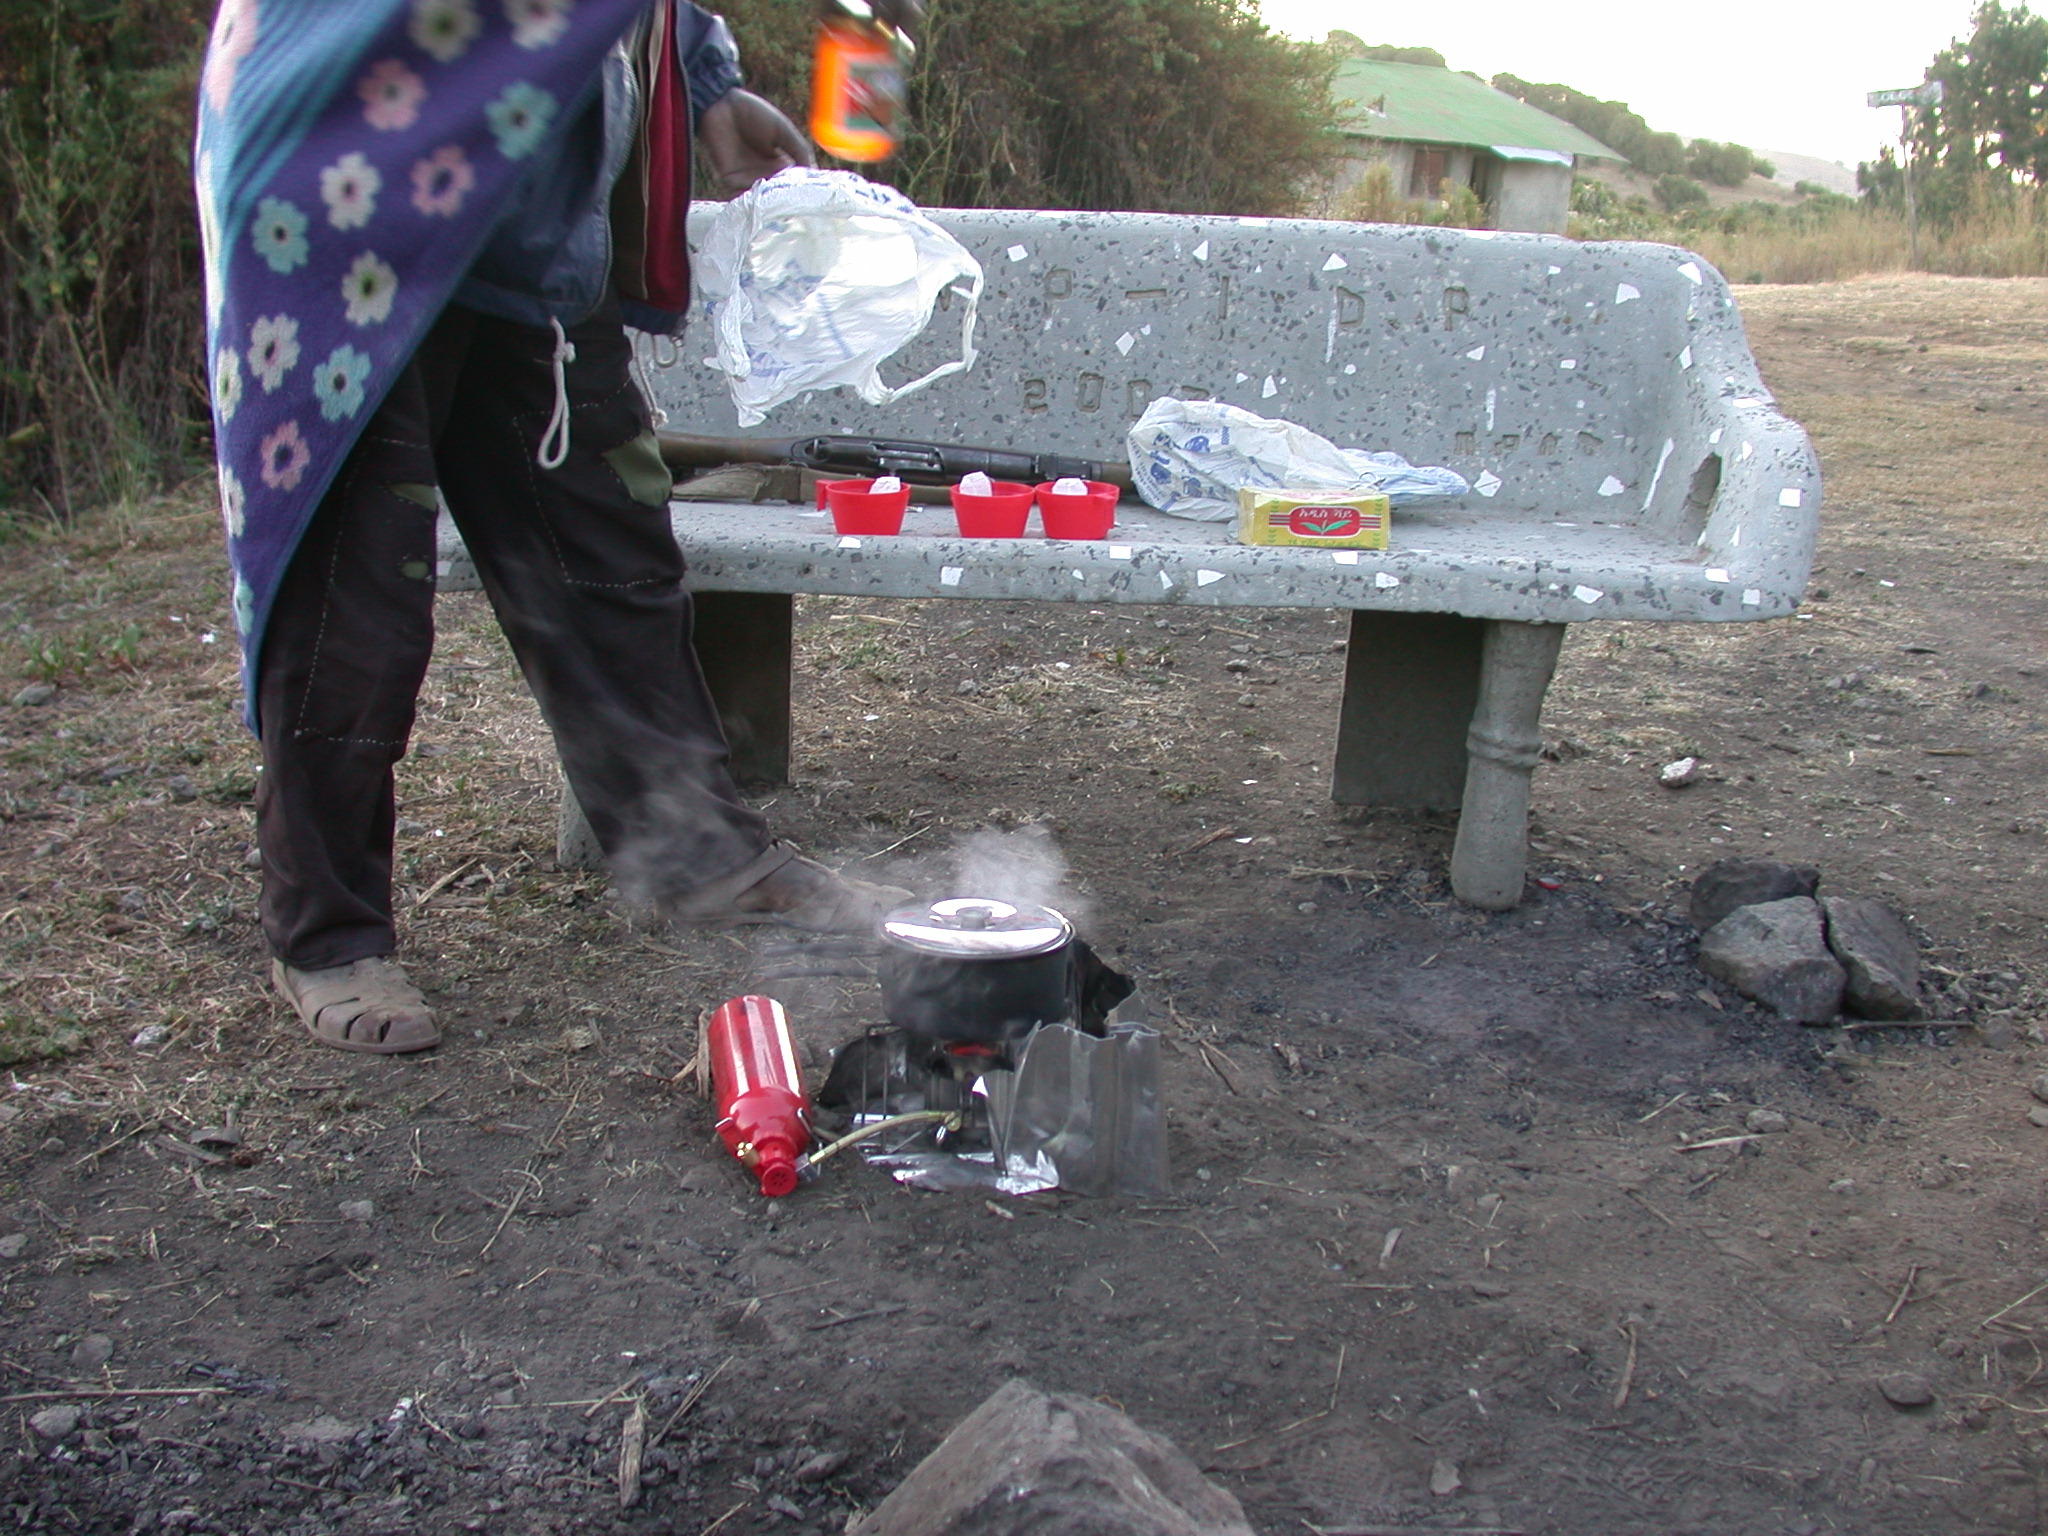 Using My Stove on Trek at Sankaber Camp, Simien Mountains, Ethiopia